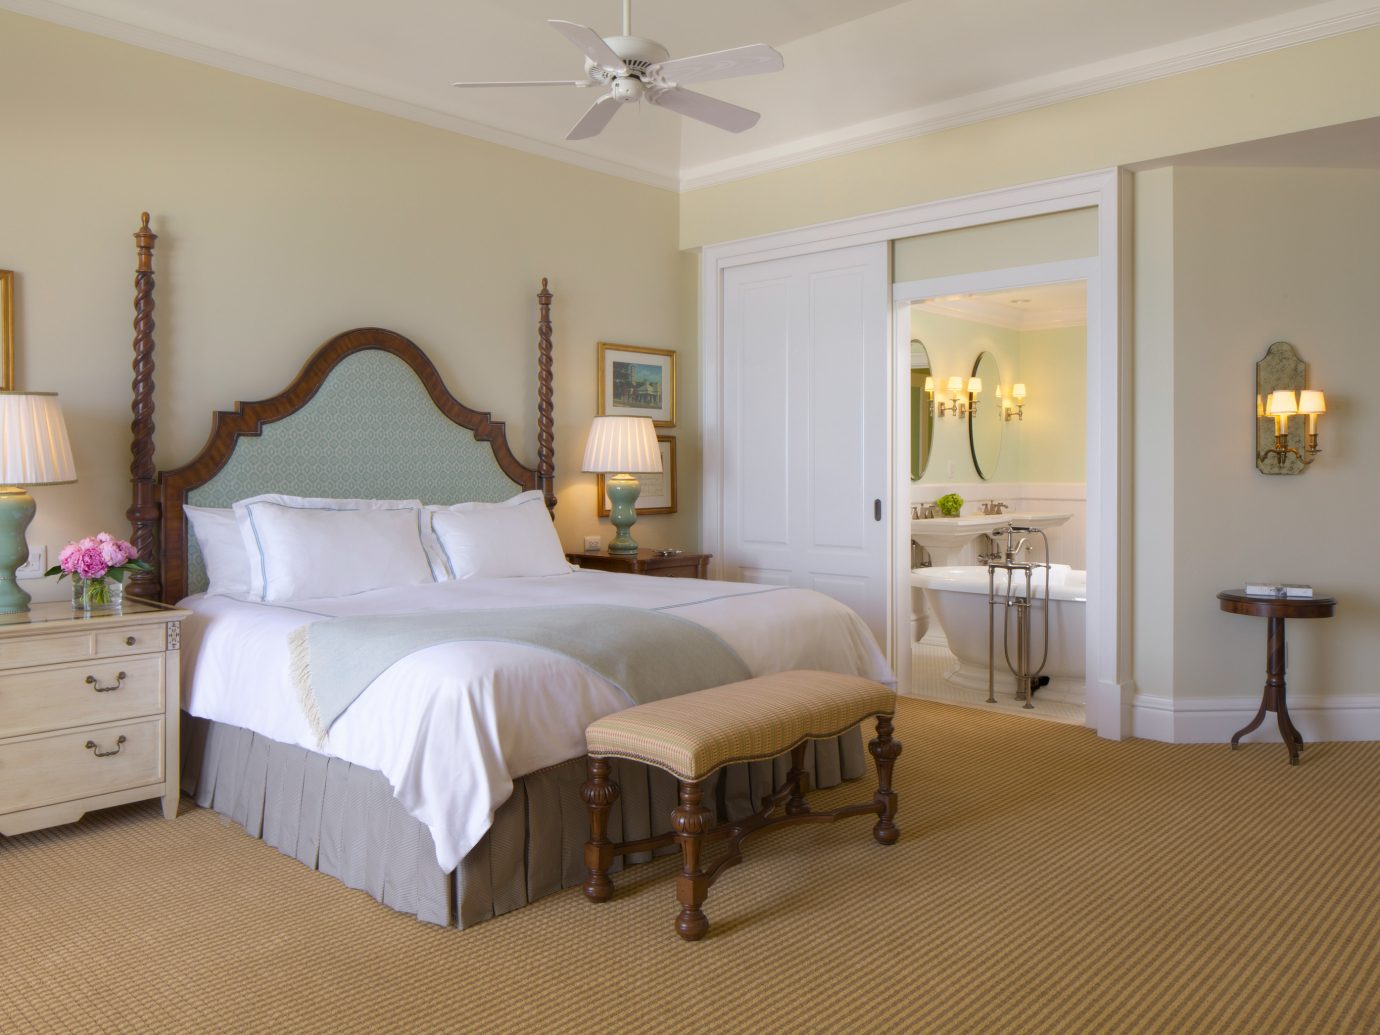 Bedroom at Rosewood Bermuda